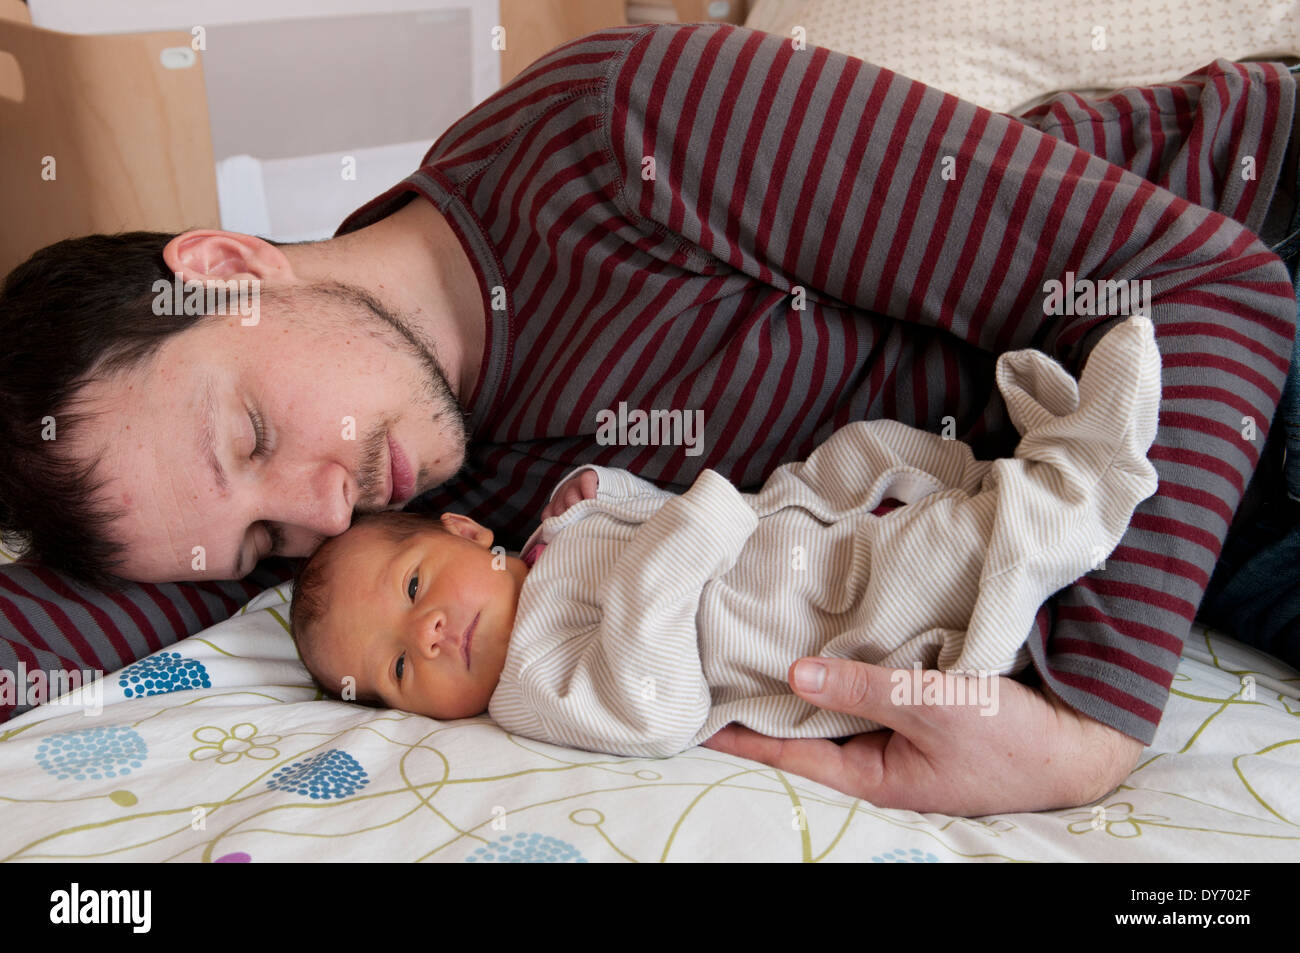 Father lying down with his newborn baby girl cuddling - Stock Image